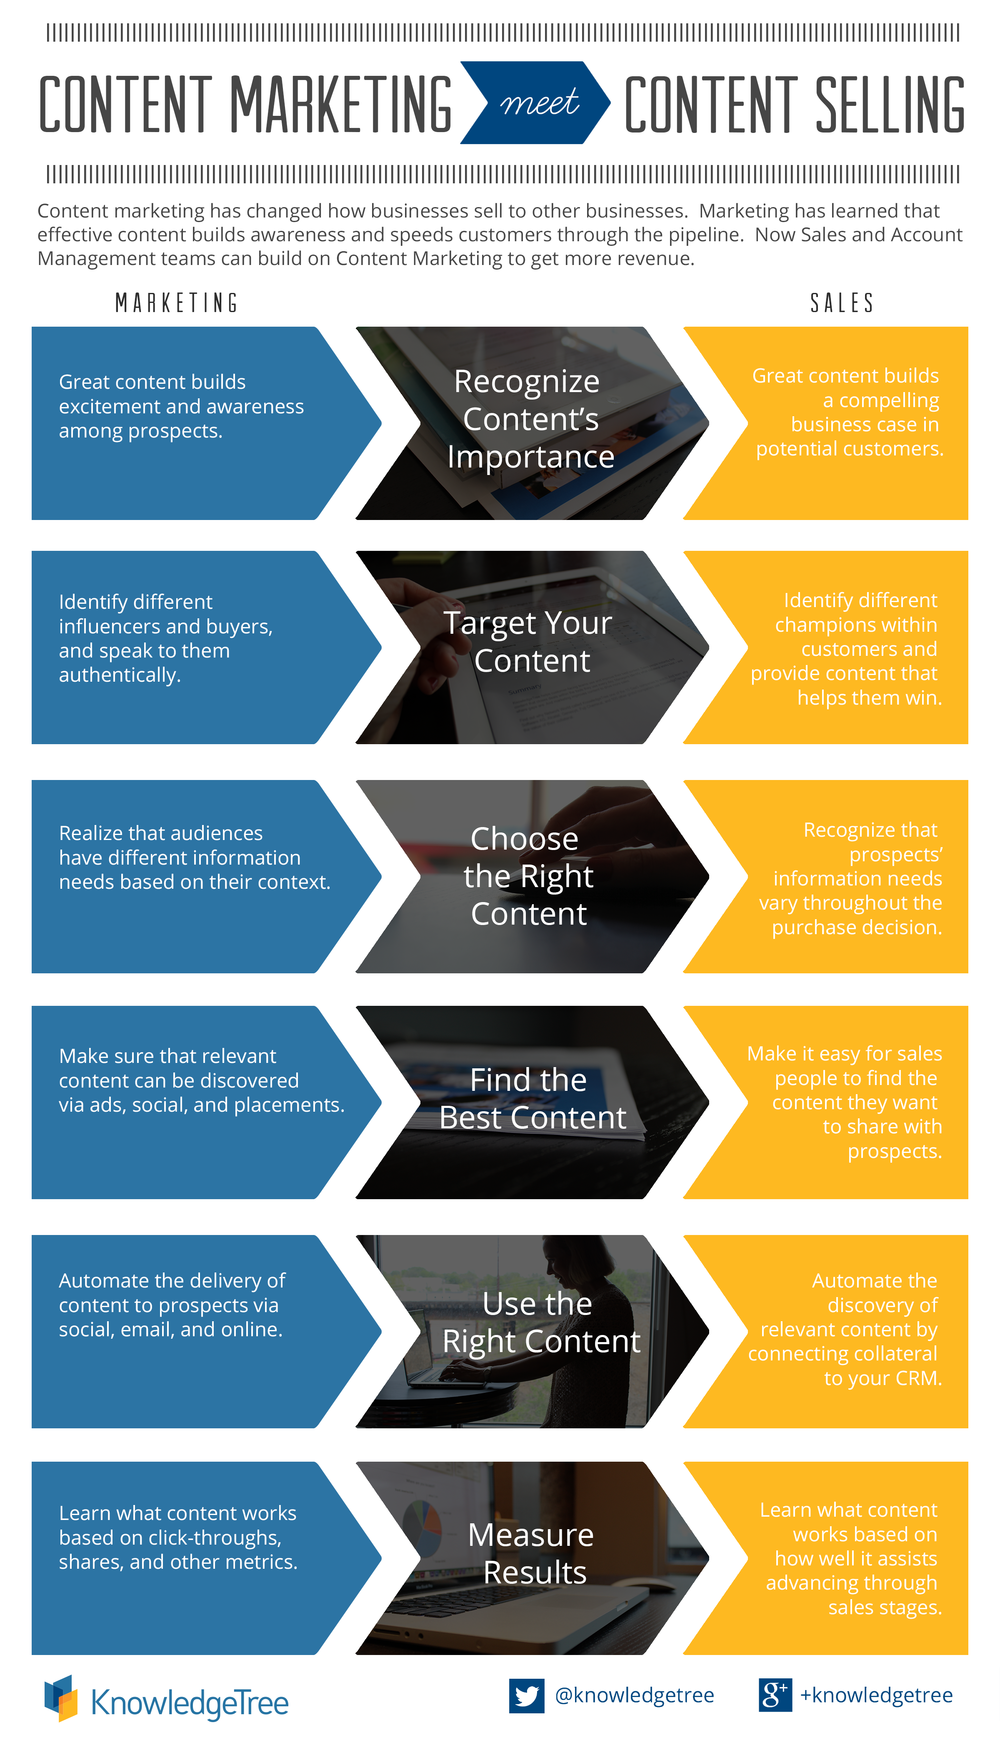 Content-Sales-Infographic.png